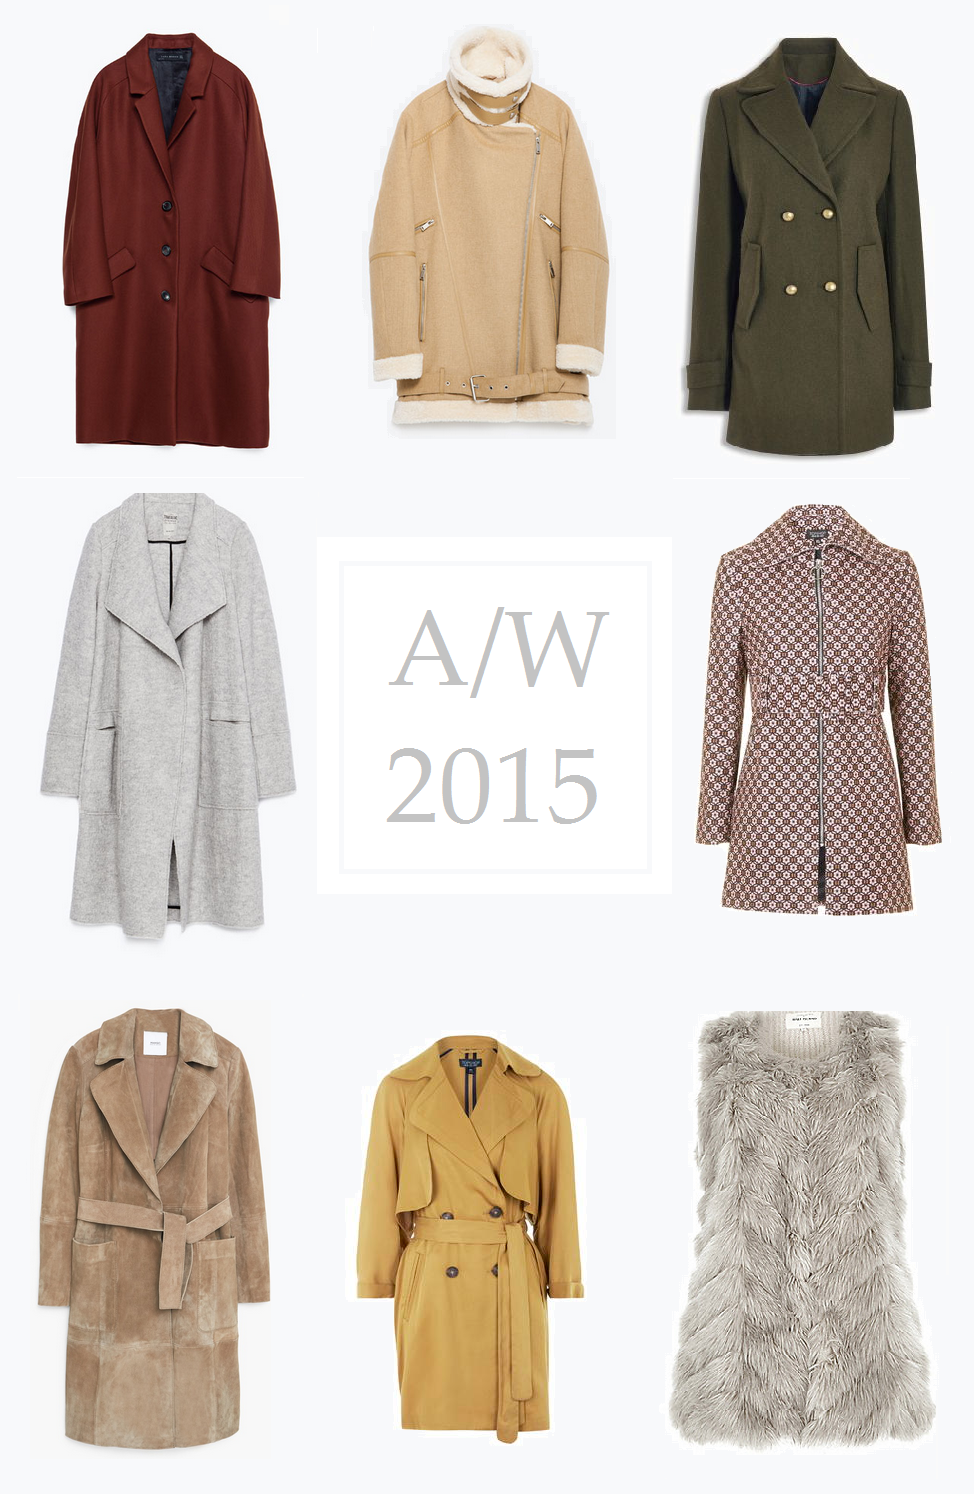 AUTUMN COATS 2015